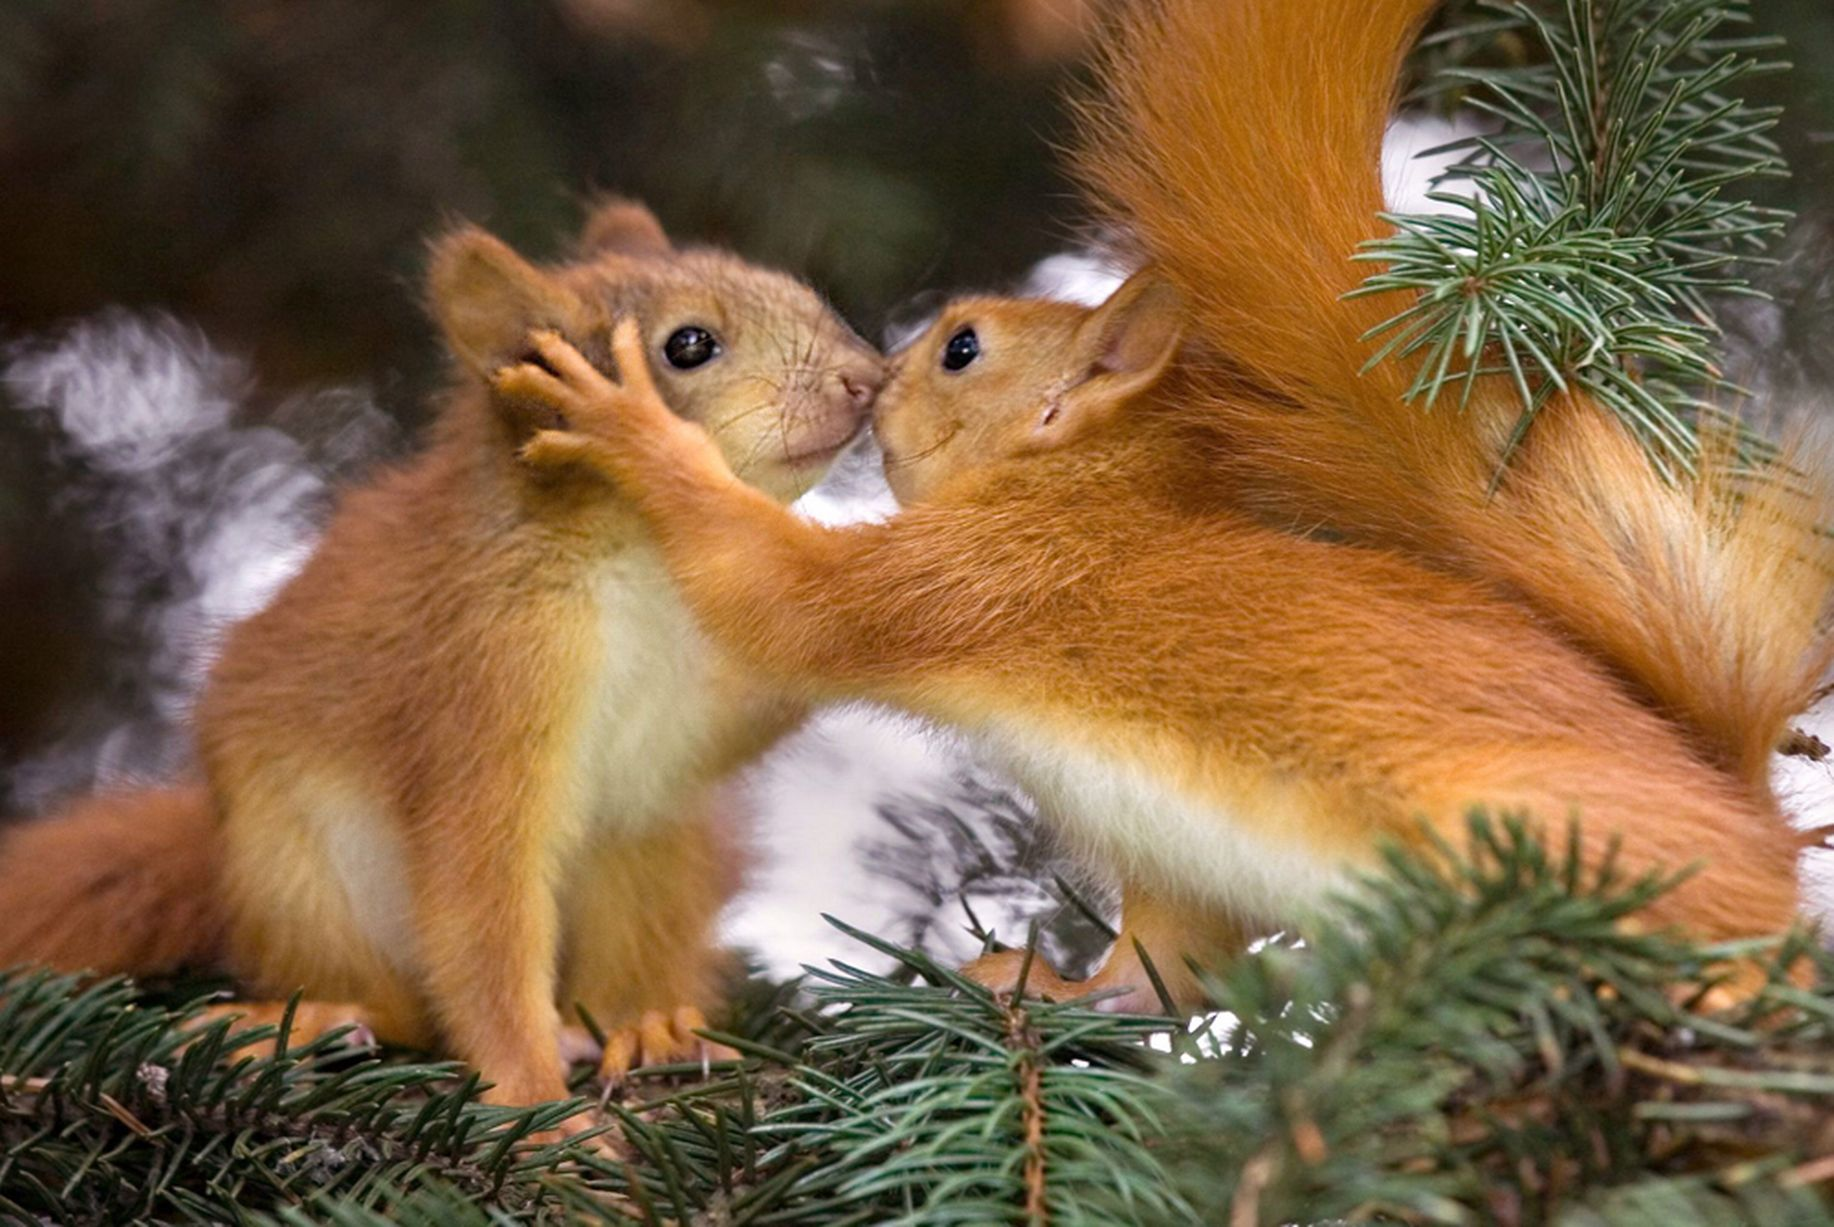 Pair-of-baby-red-squirrels-appear-to-share-a-kiss